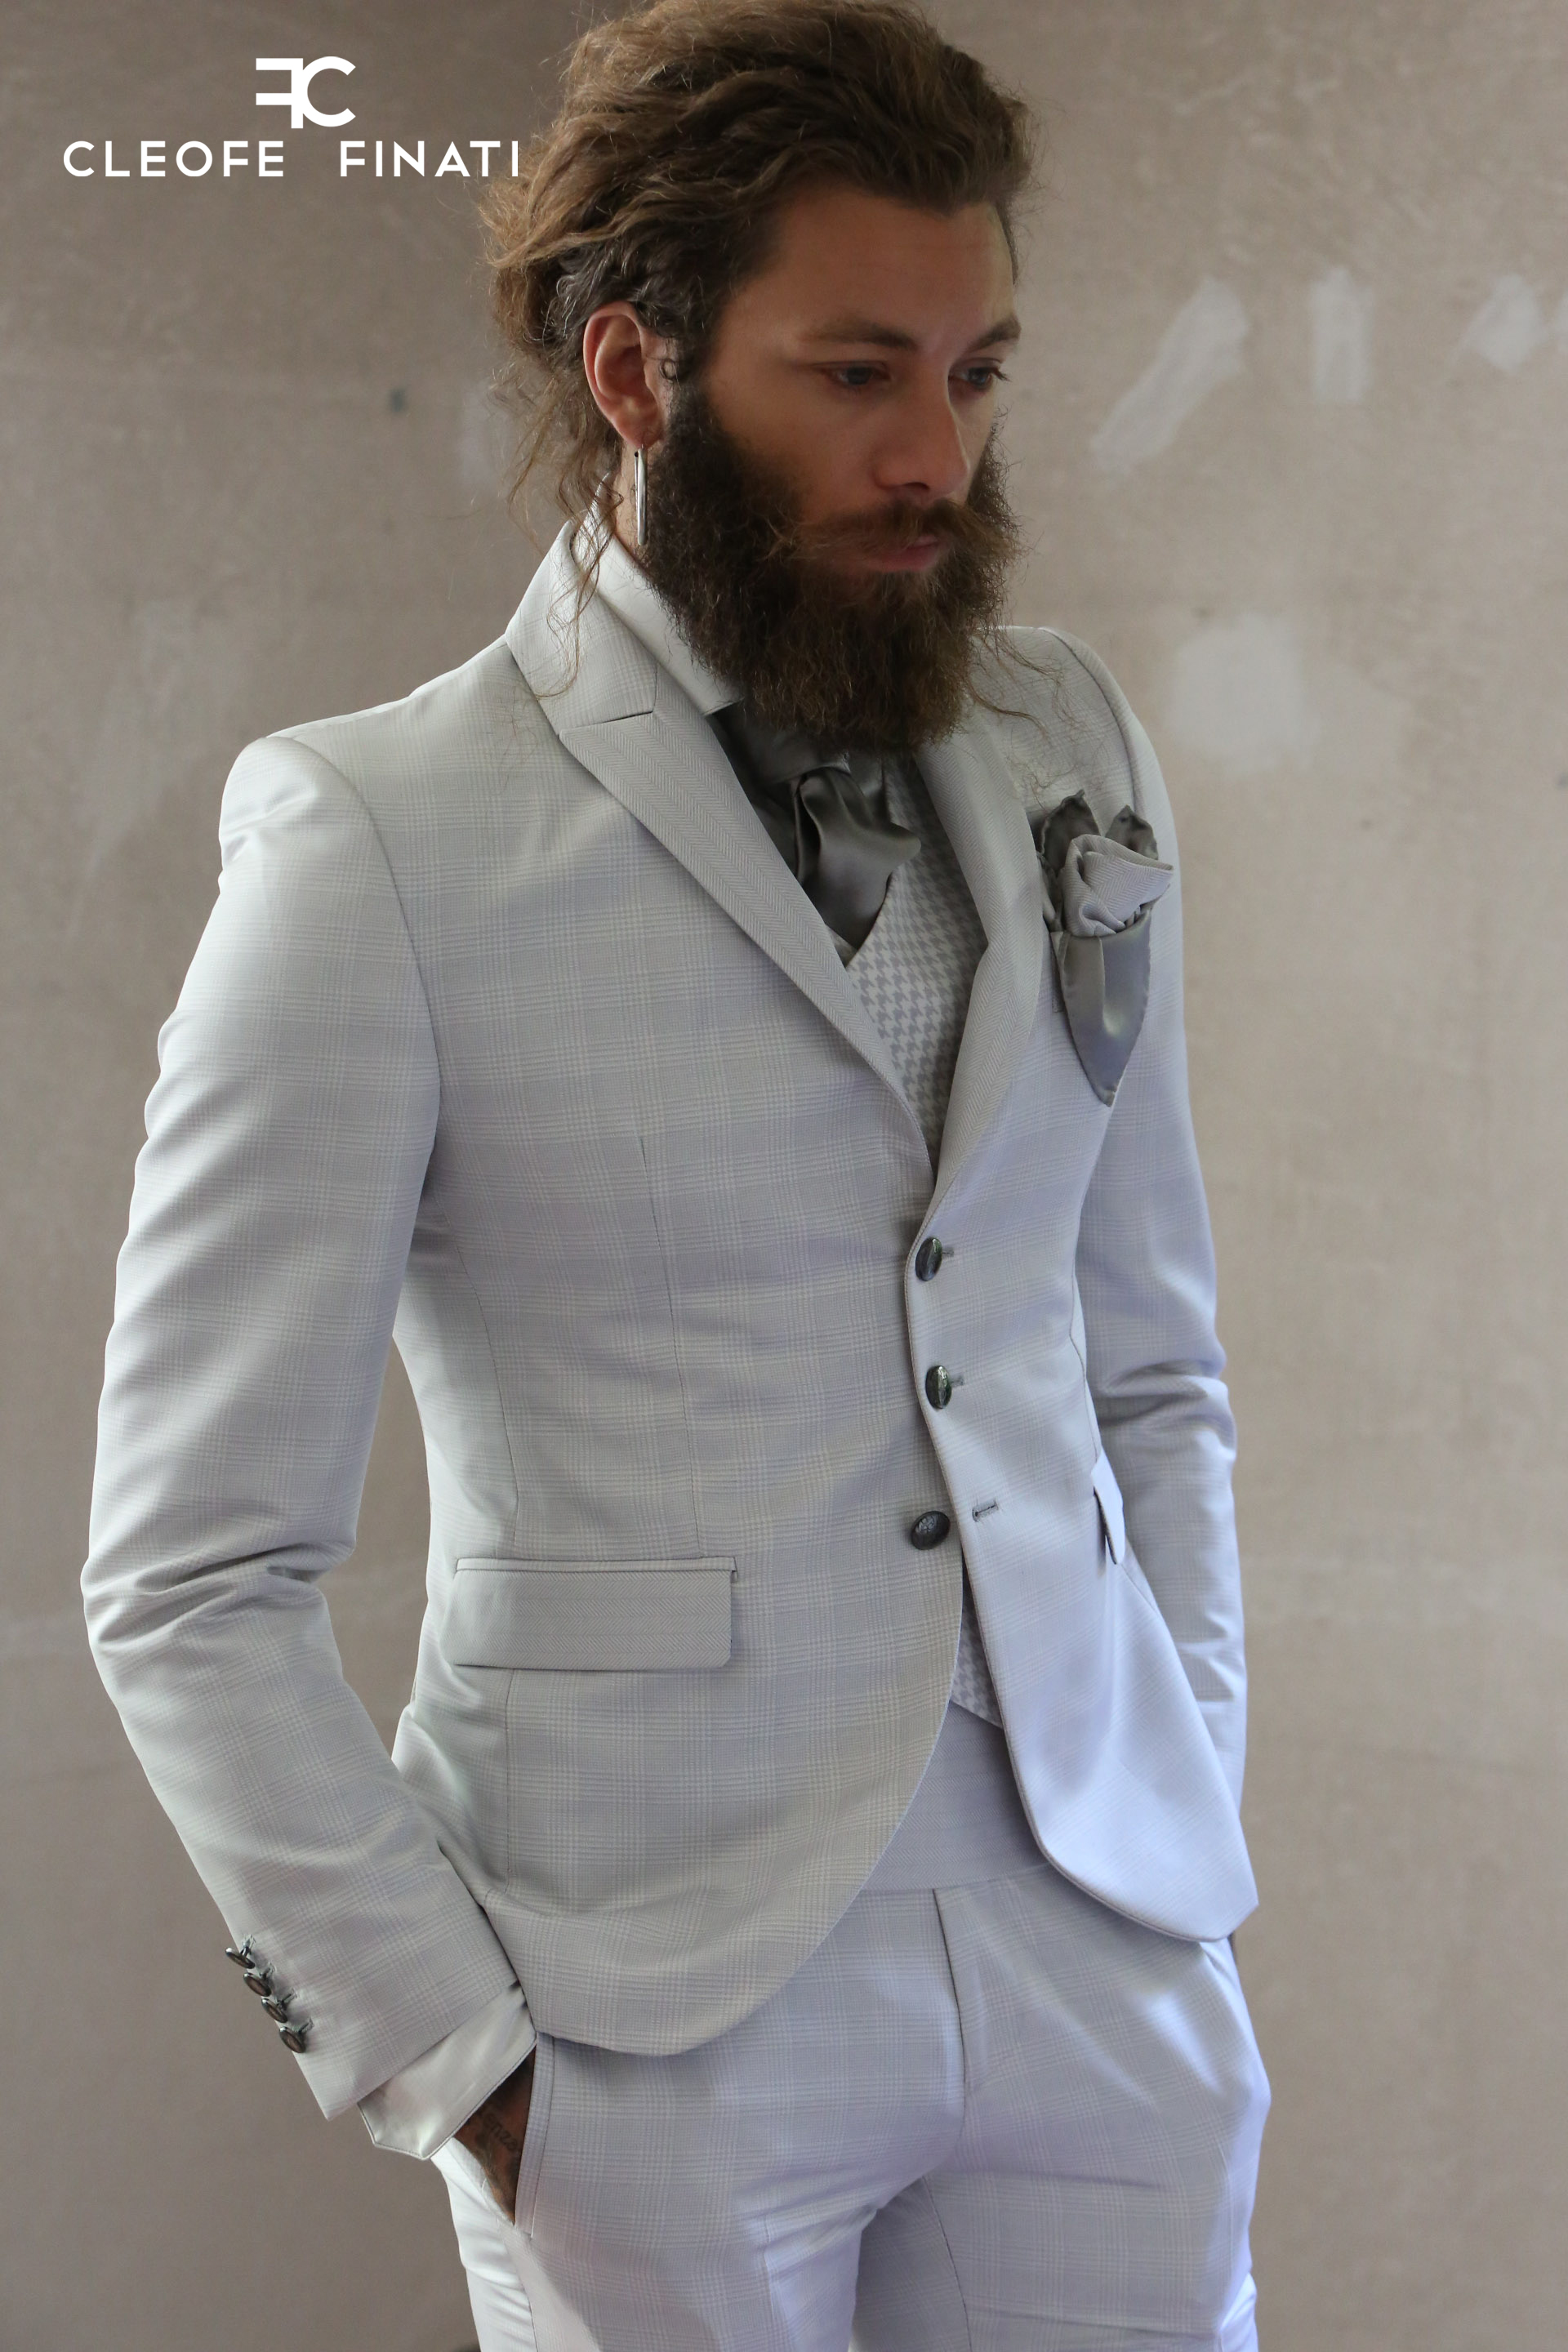 Andrea Marcaccini wears a suit of the Luxury Collection by Cleofe Finati a3d7c11bed4